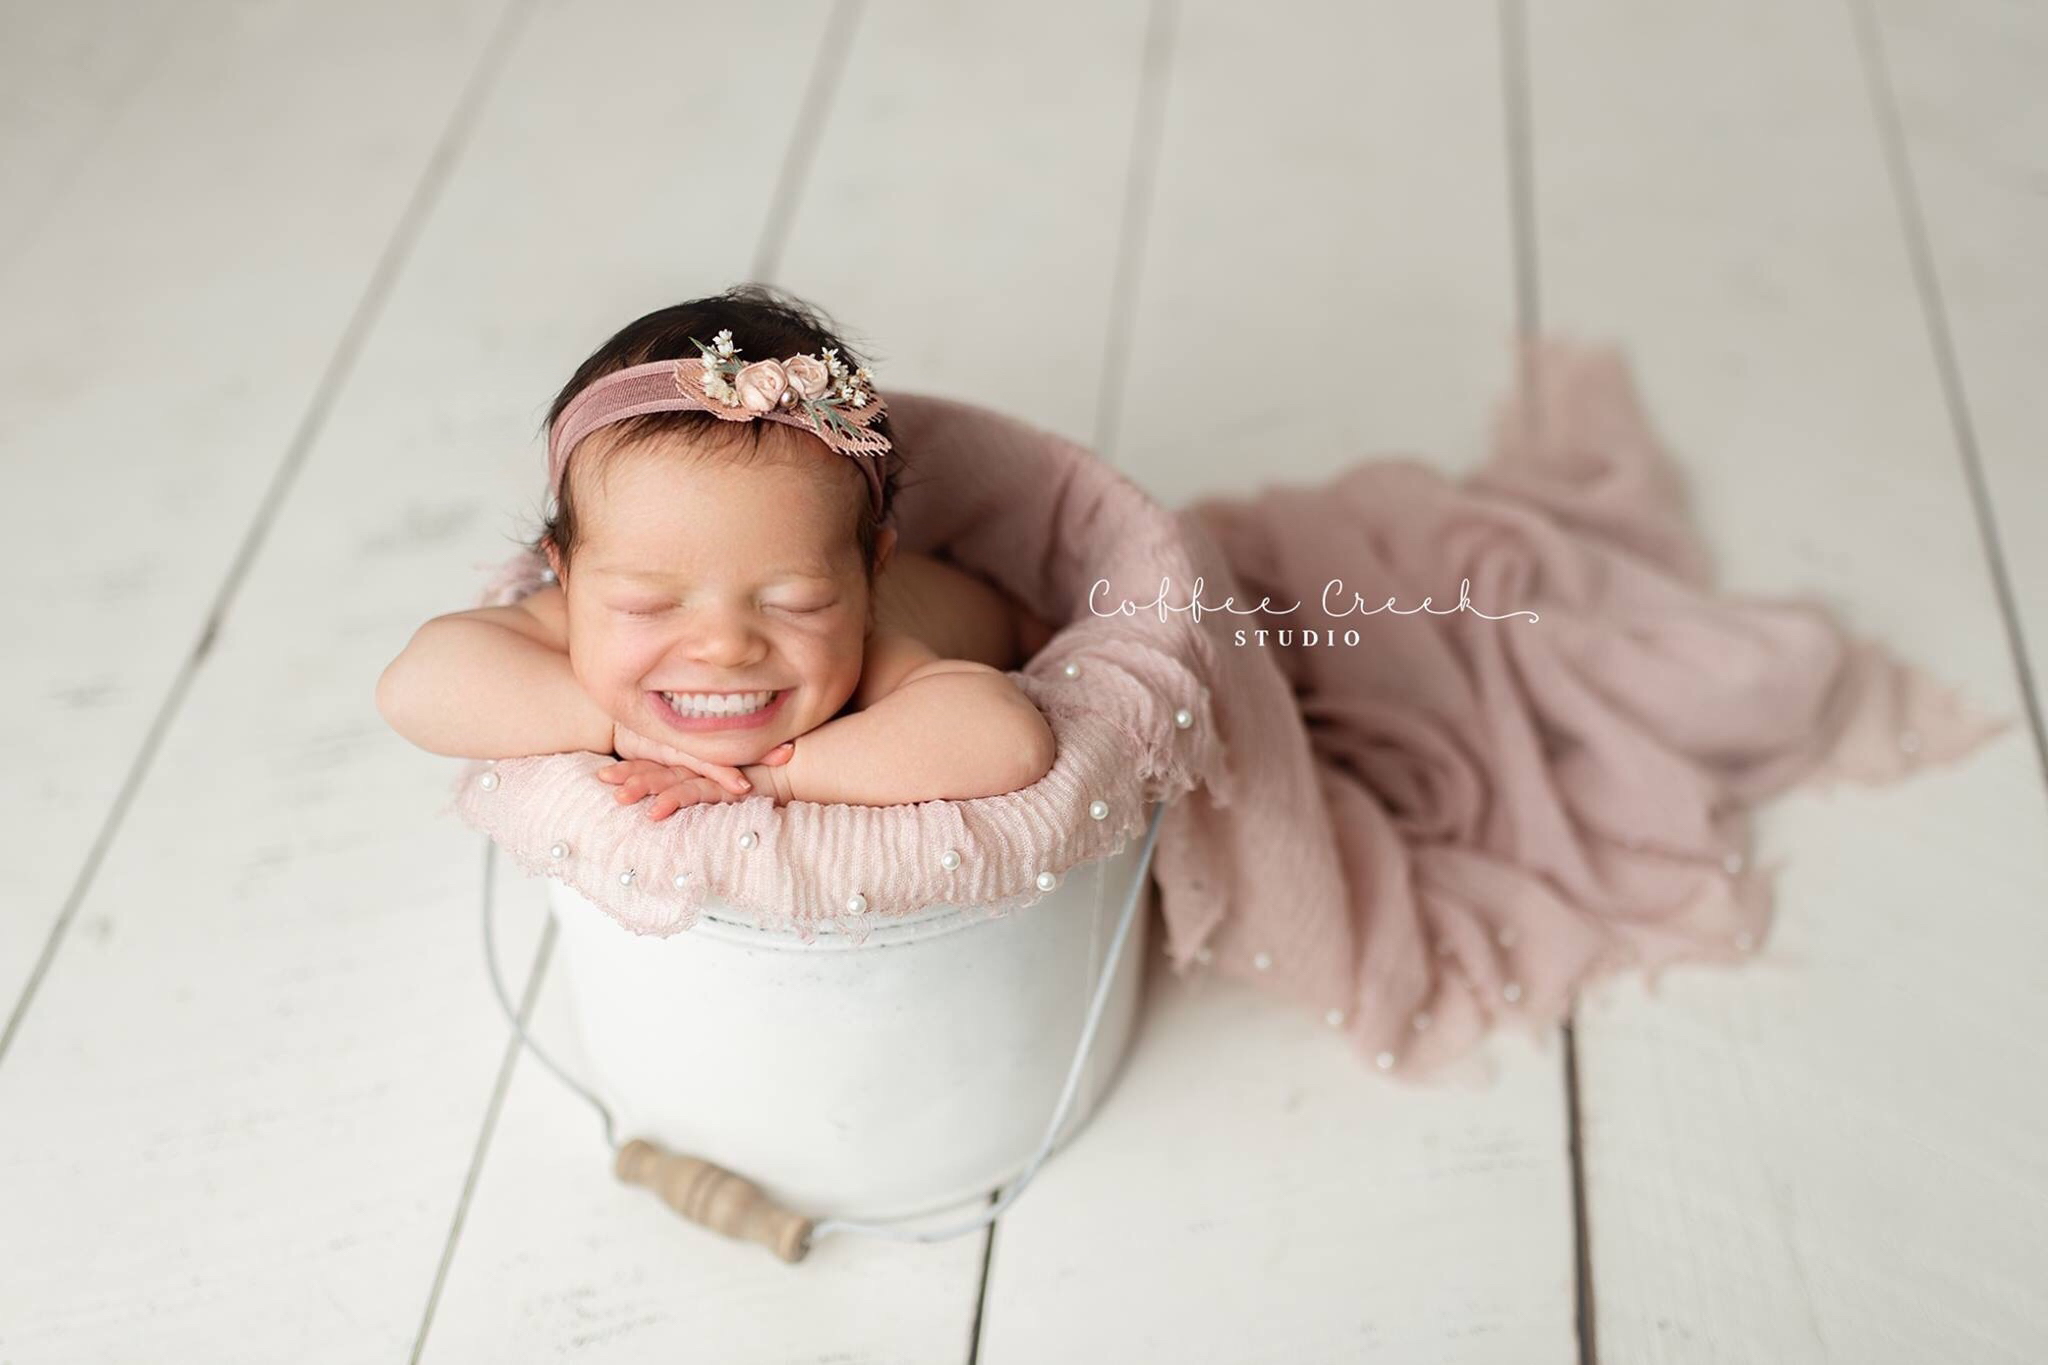 Photos: 'Can't. Stop. Laughing.' Photography studio imagines babies with adult smiles